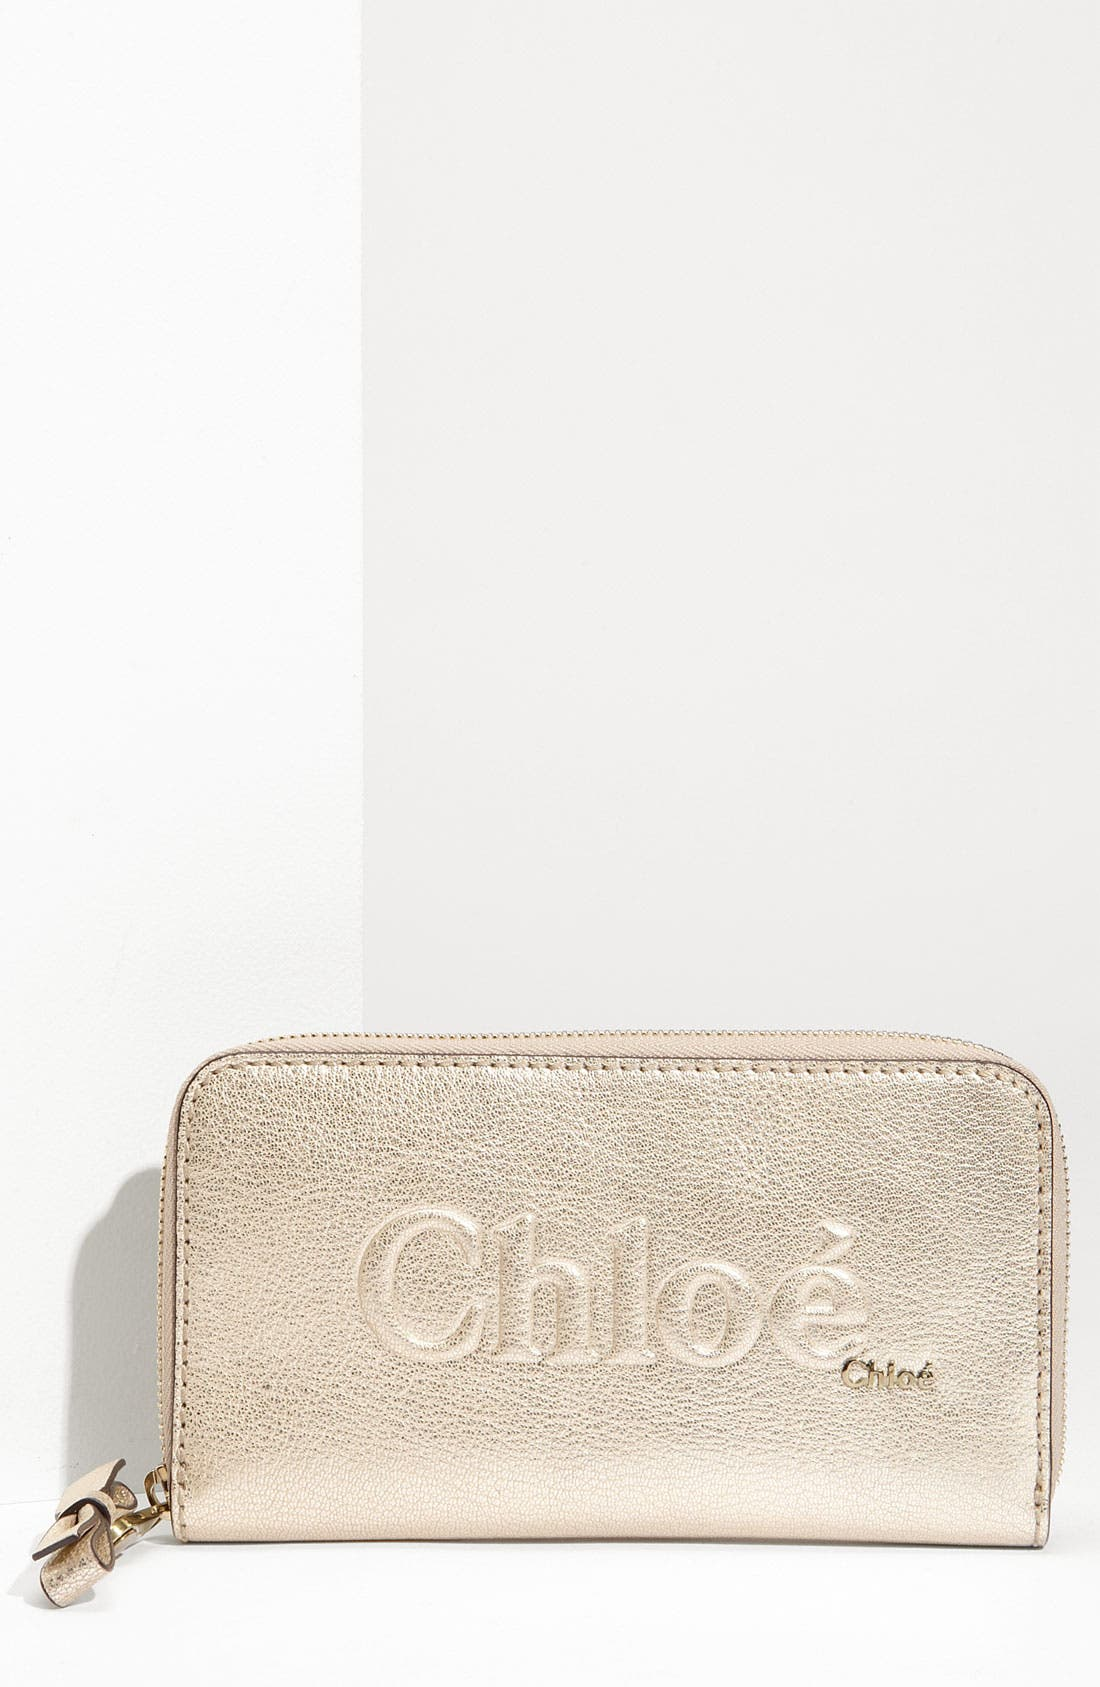 Alternate Image 1 Selected - Chloé 'Shadow Long' Metallic Leather Wallet